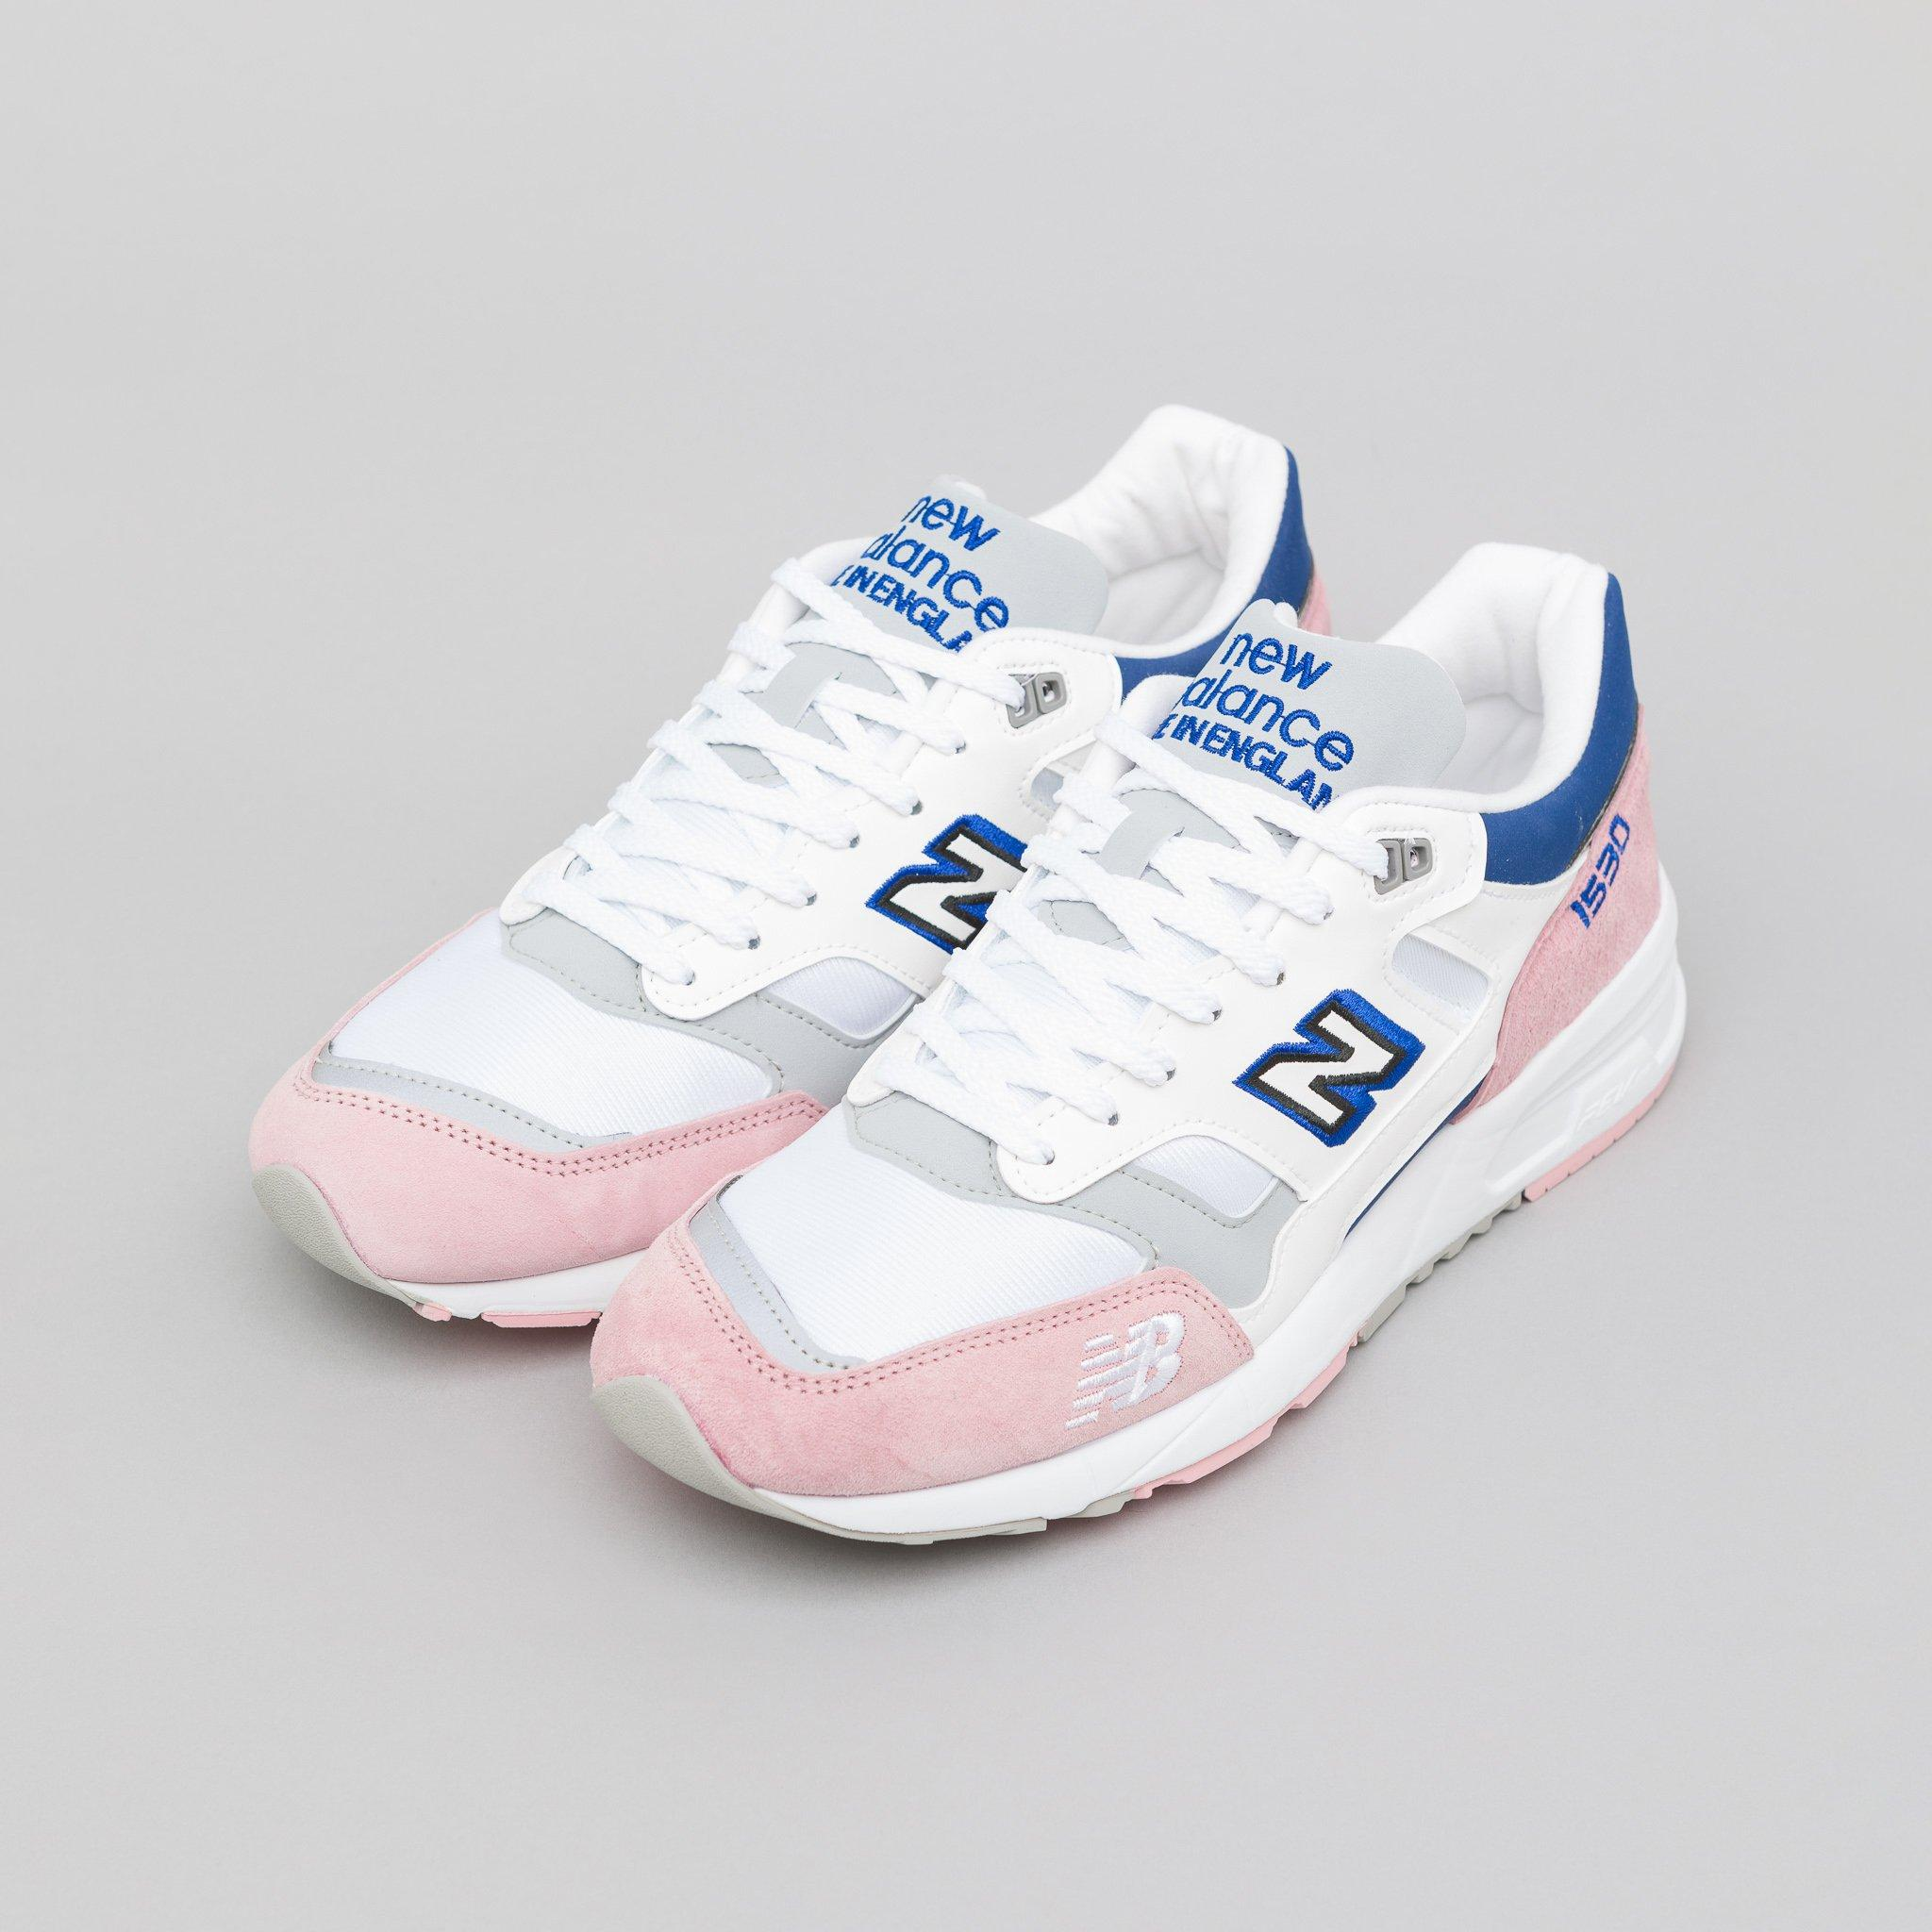 New Balance Leather M1530 Wpb In White